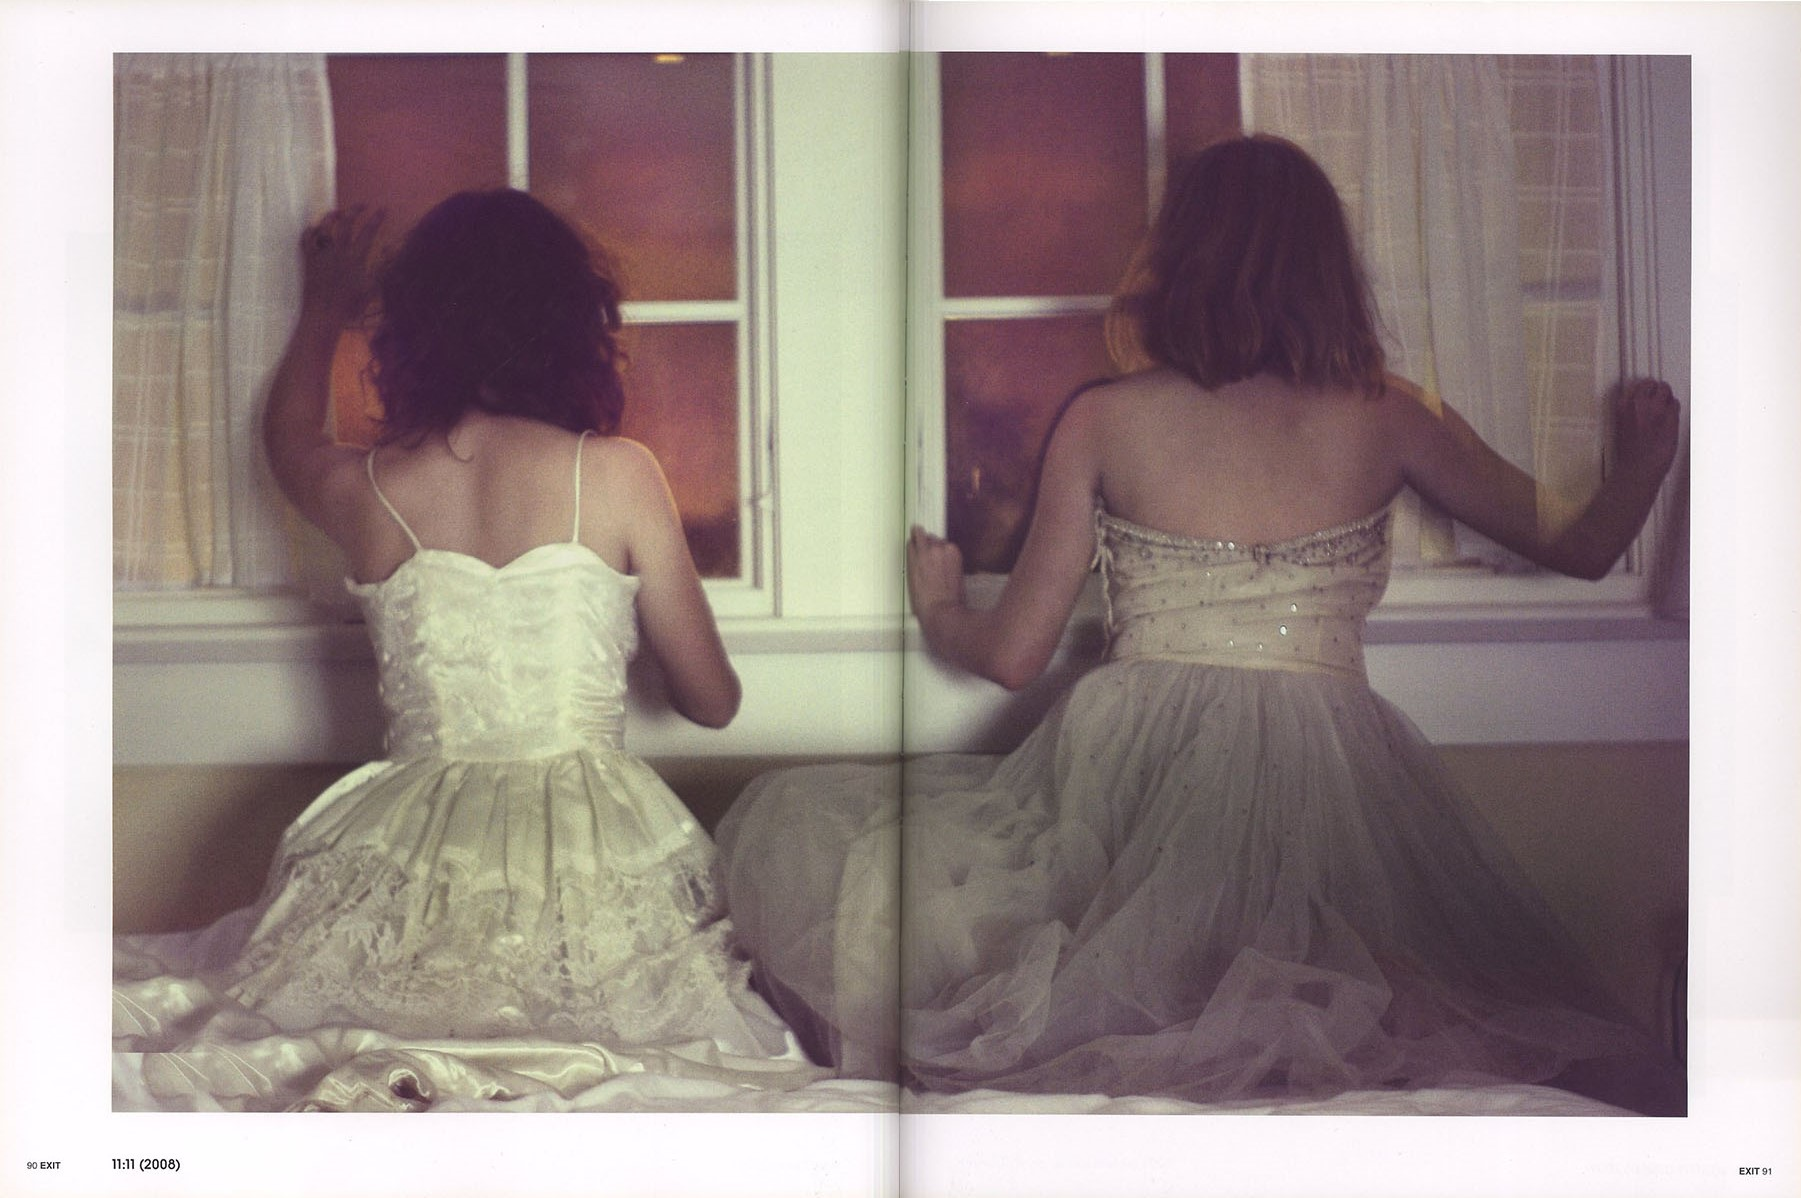 ENVELOPED IN A DREAM | 11:11 (2008) | PHOTOGRAPHY OLIVIA BEE | EXIT | VOLUME 3 NUMBER 10 ISSUE 30